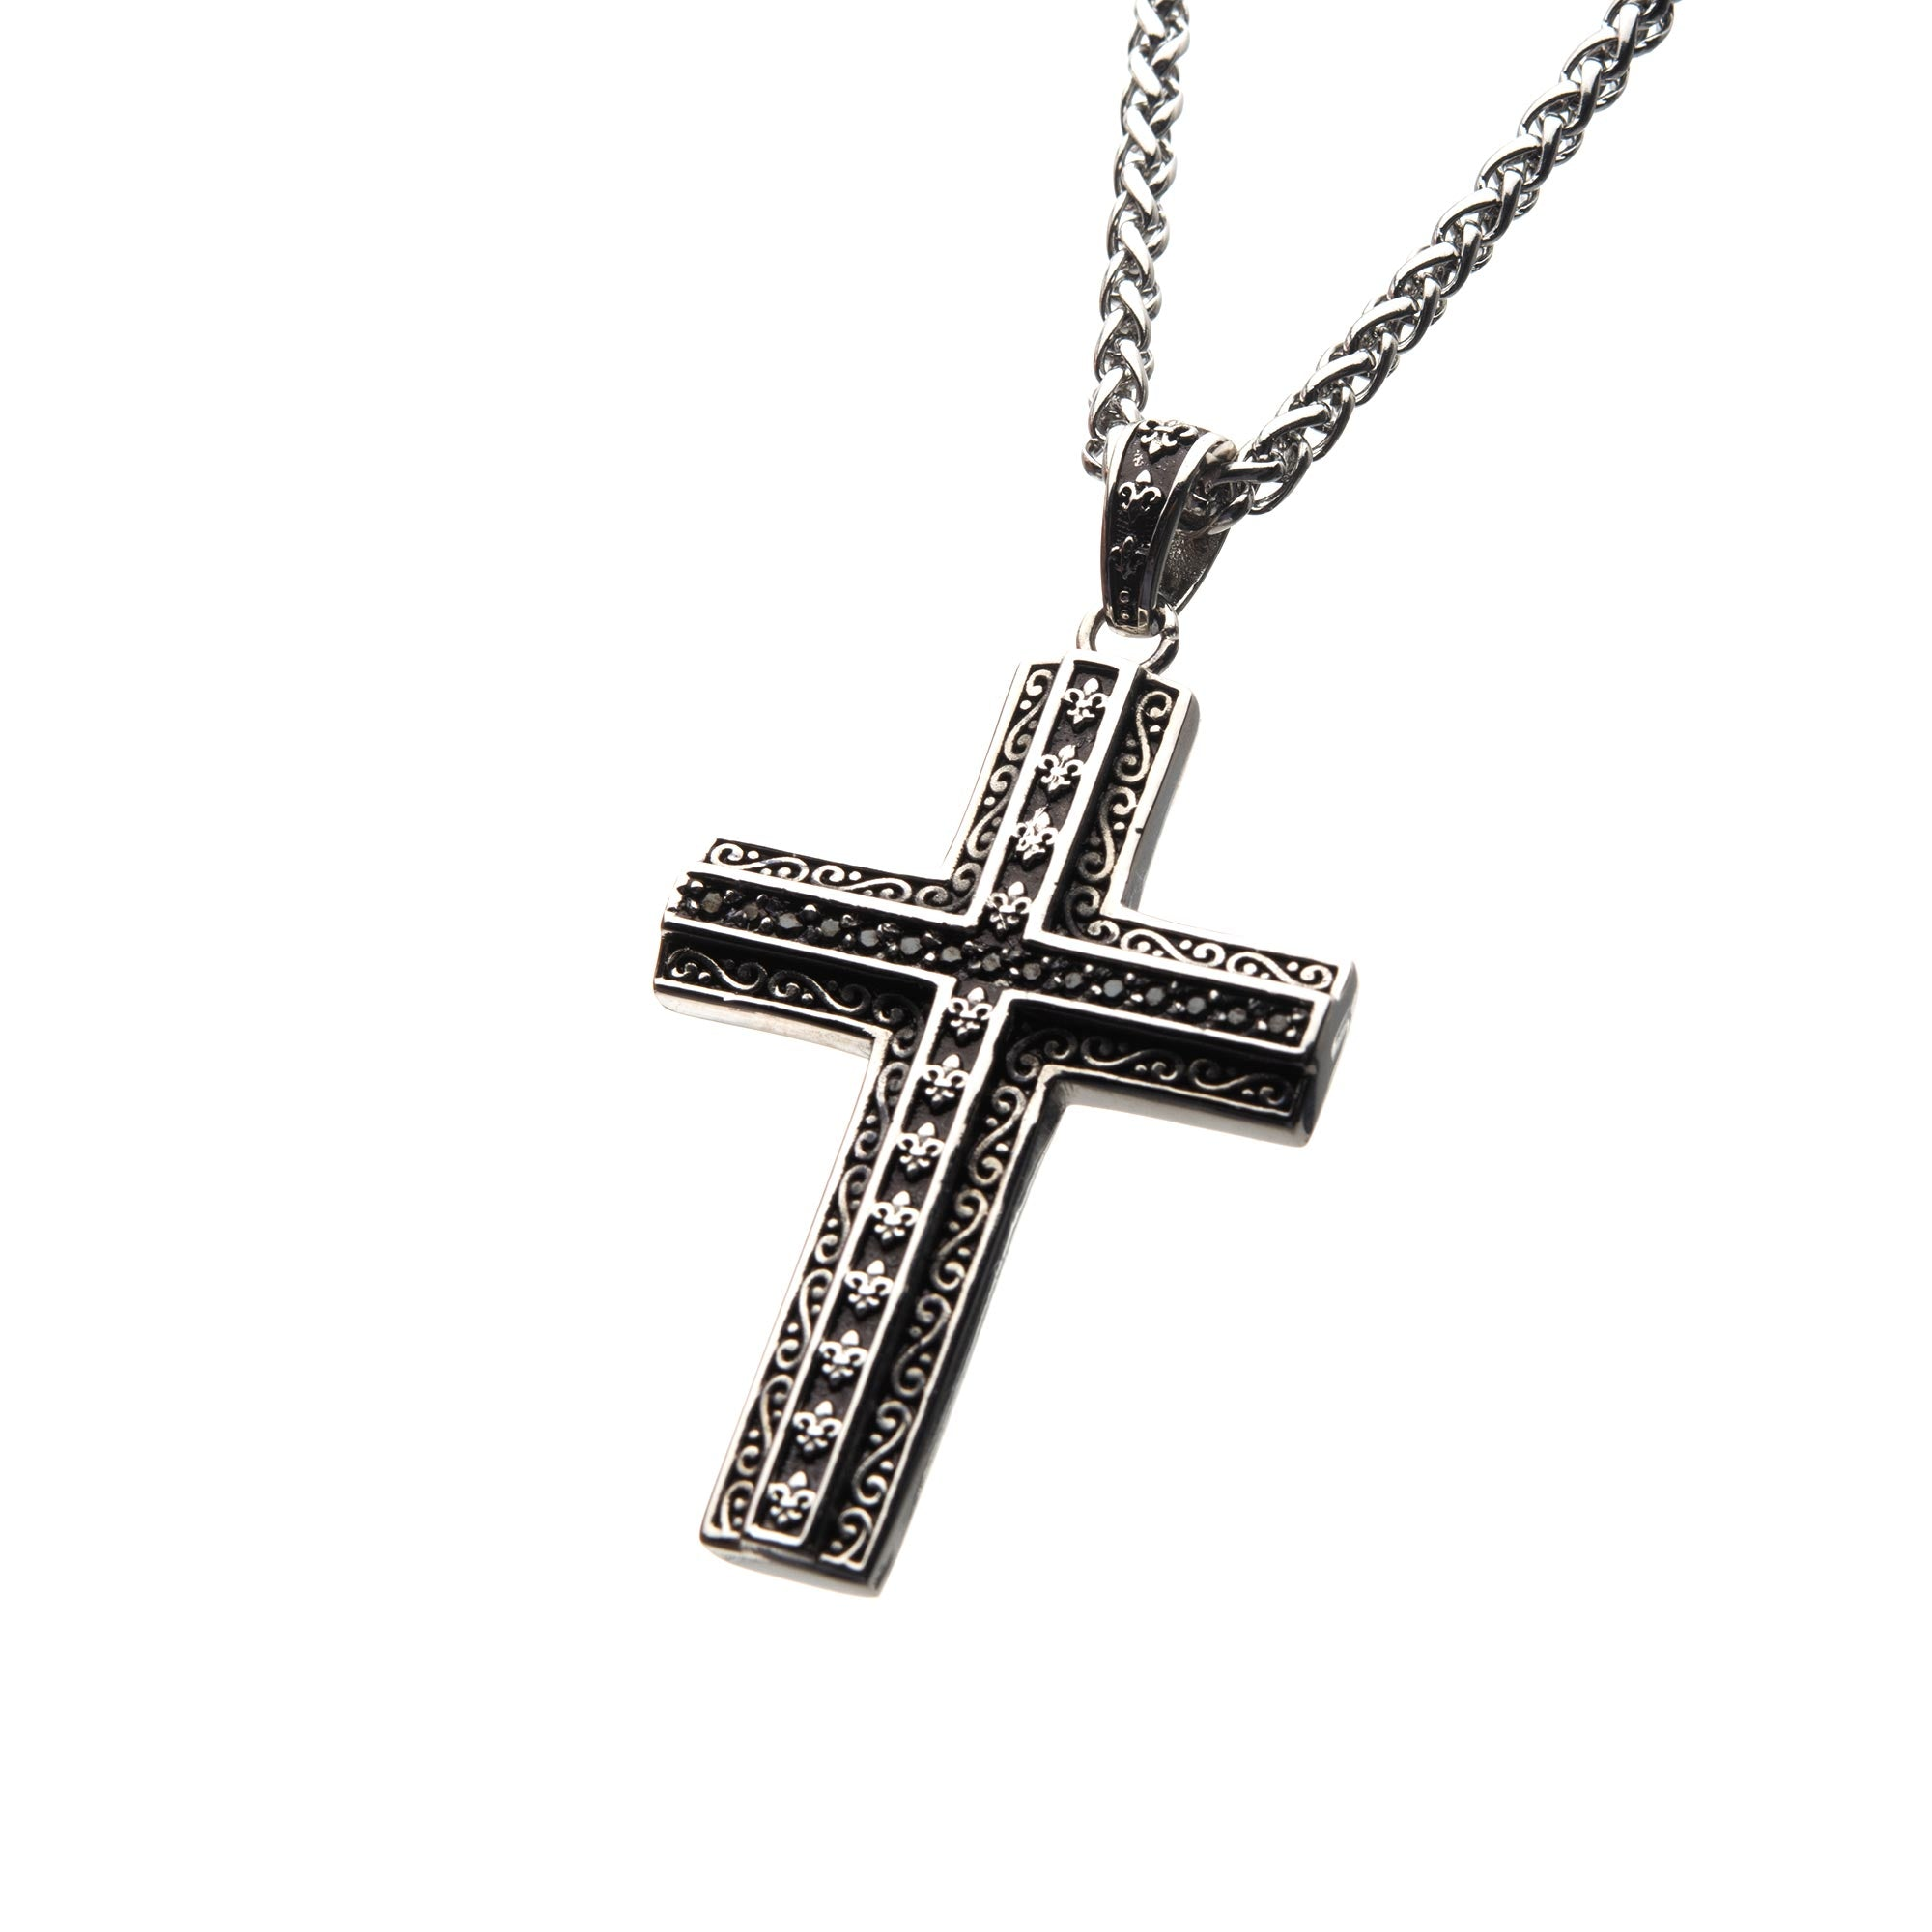 Black Oxidized Steel Cross with Black CZs Pendant with Steel Wheat Chain